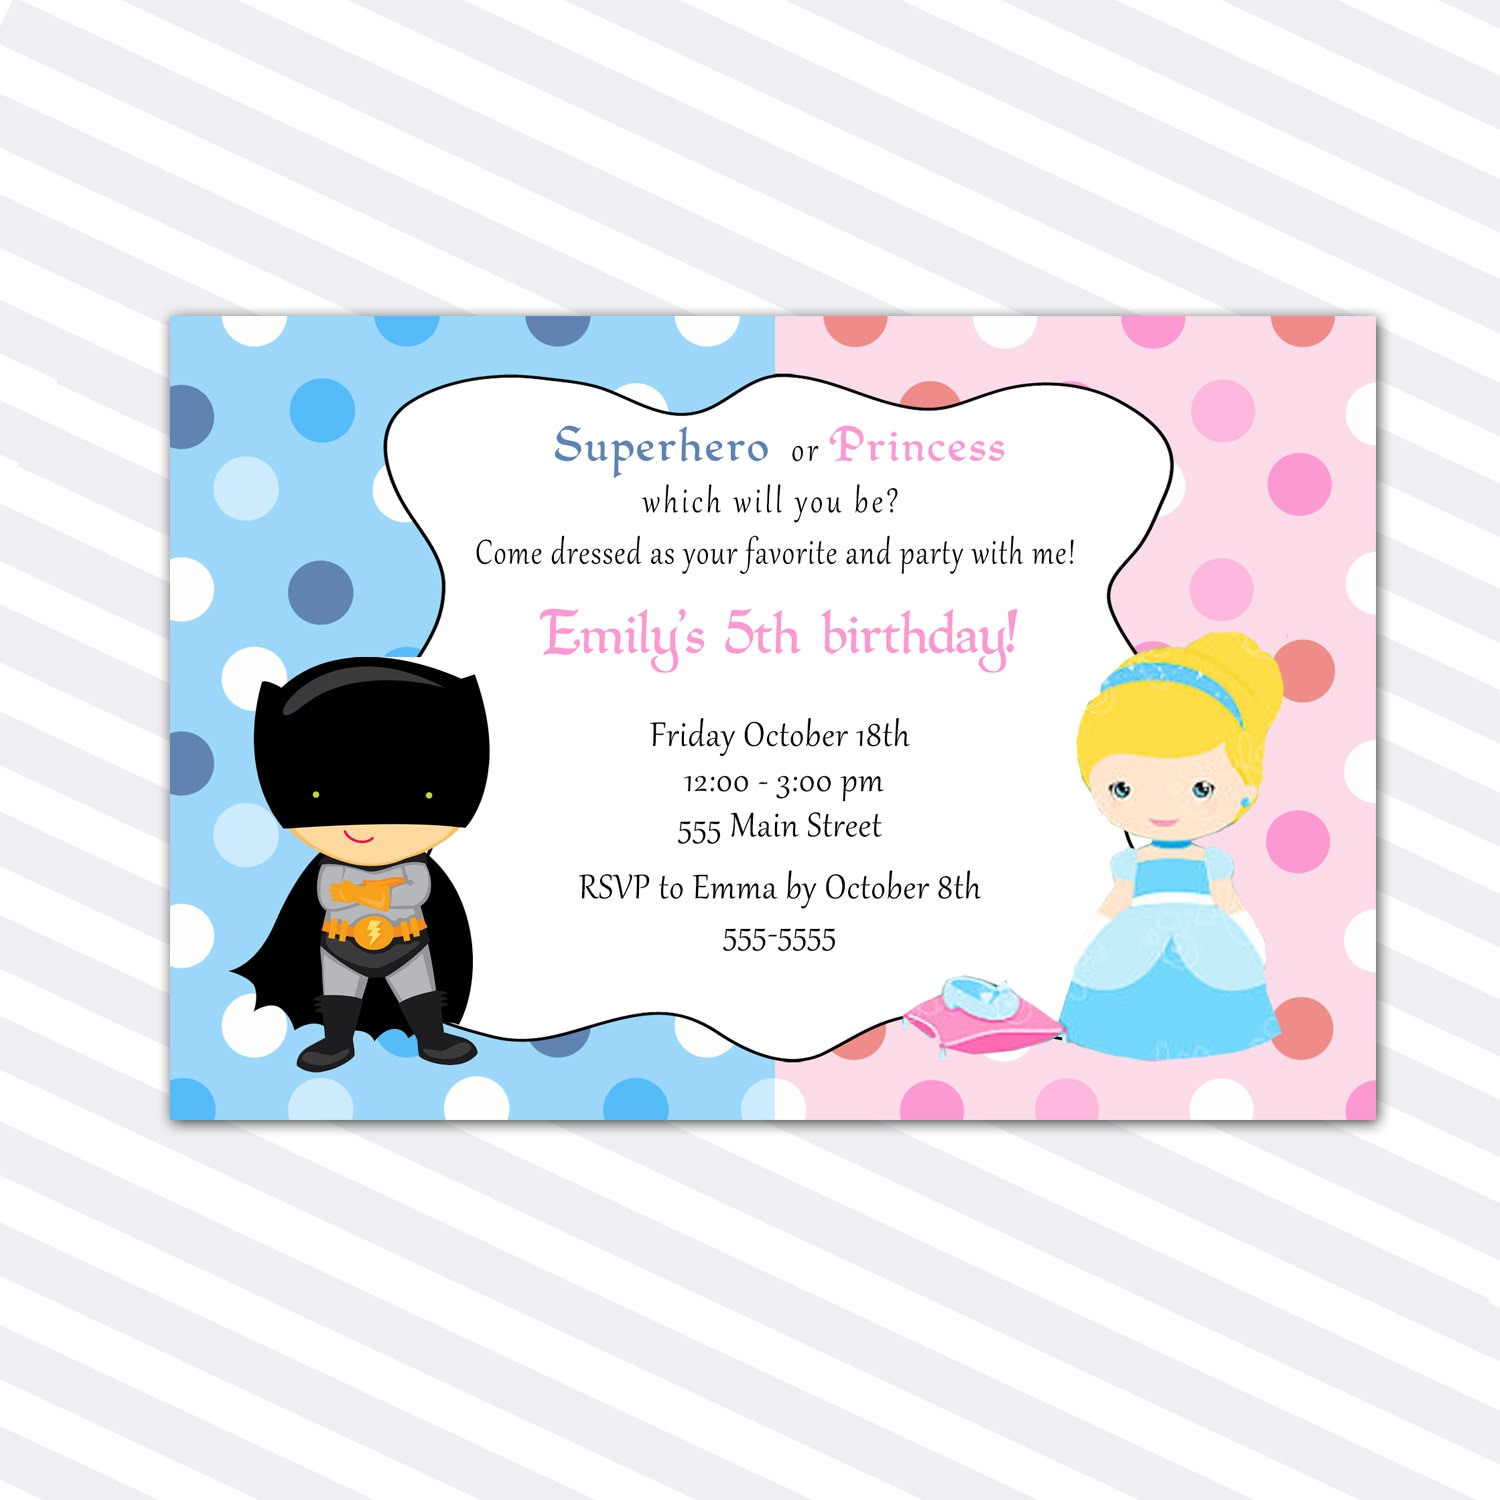 Princess Birthday Invitation Card Superhero Siblings Girl